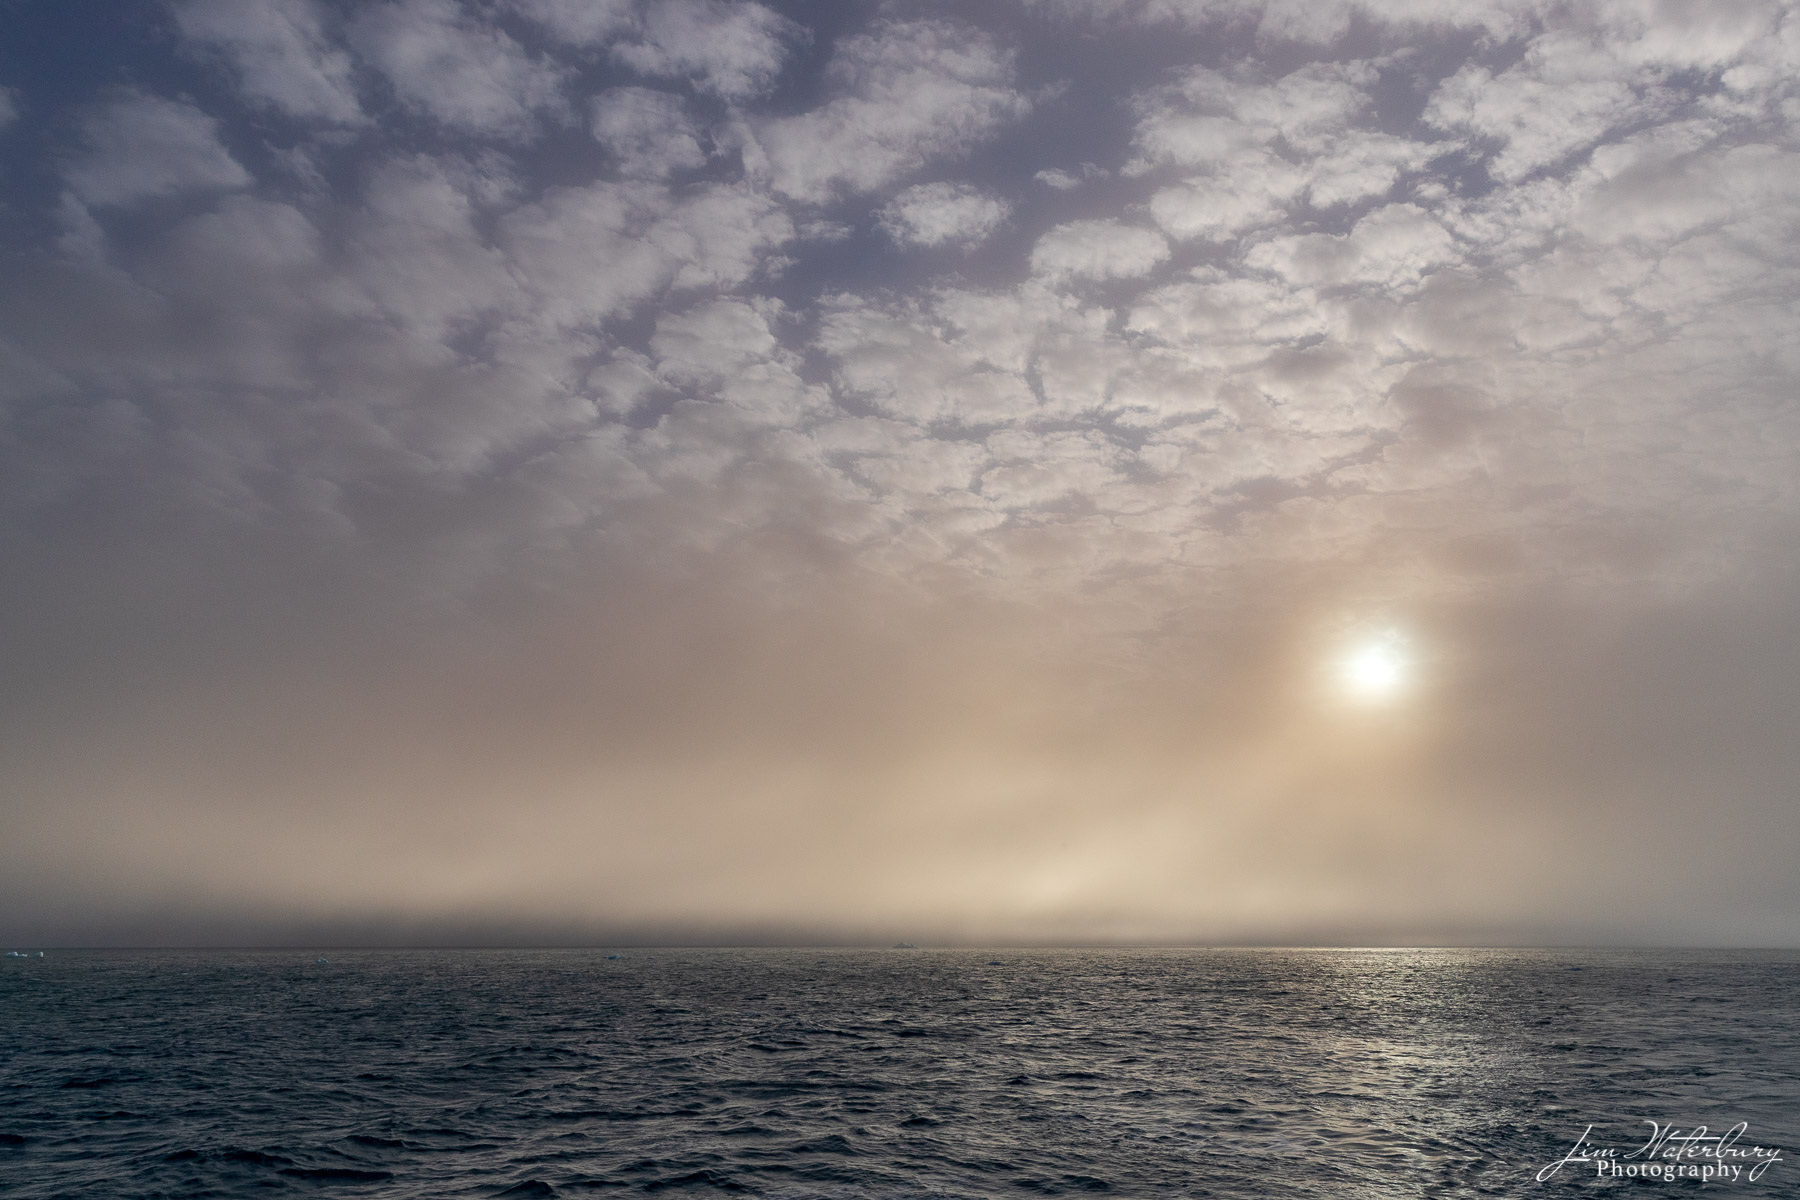 sun, mist, haze, high arctic, Svalbard, photo